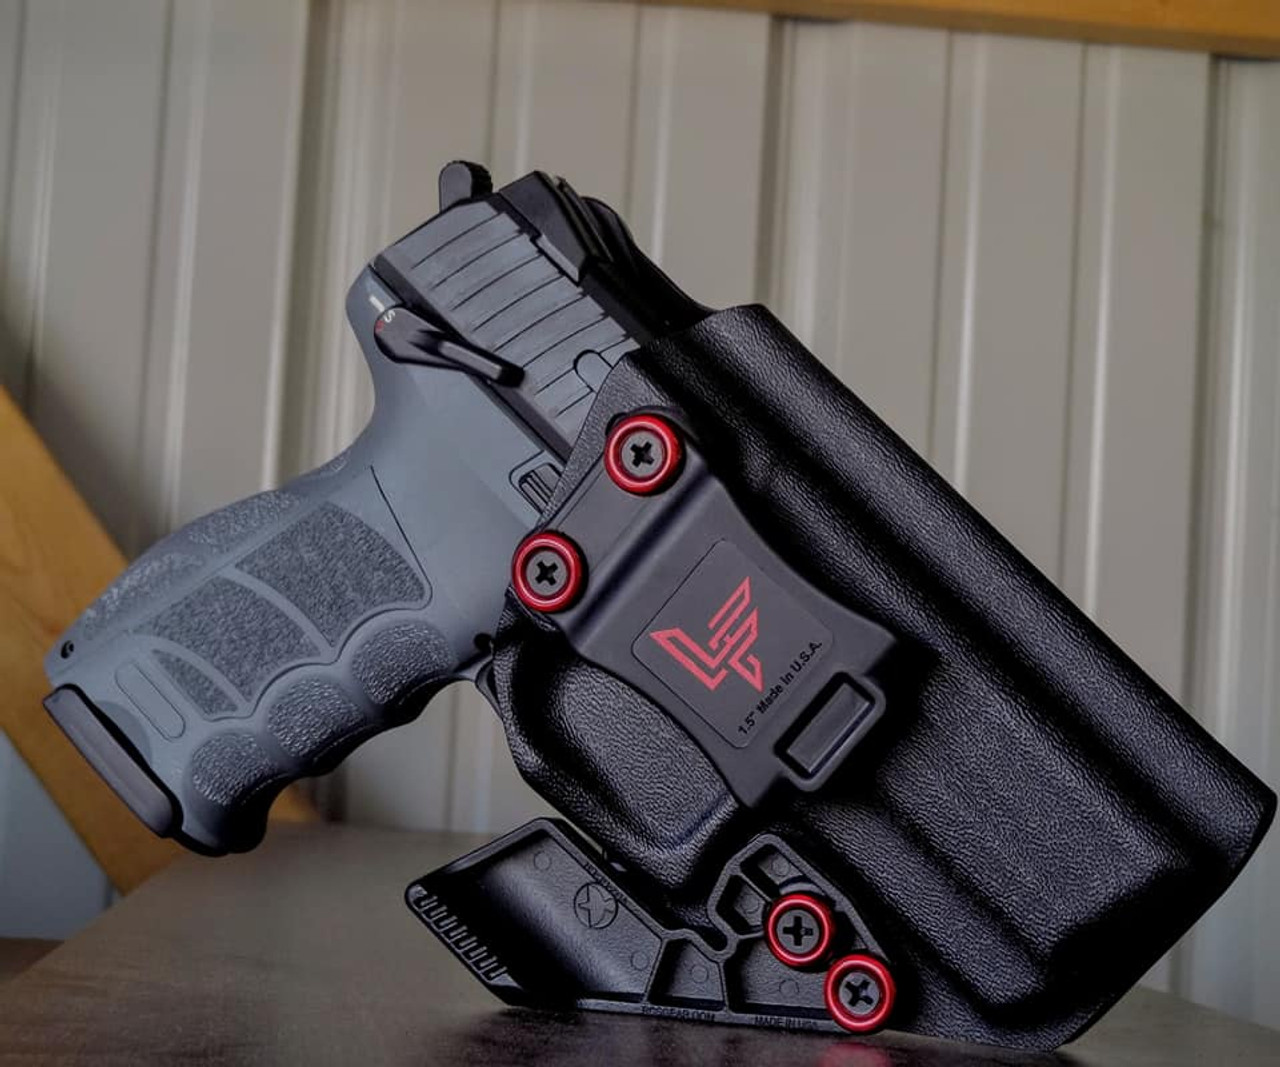 HK P30 P30s Appendix Carry Kydex Holster